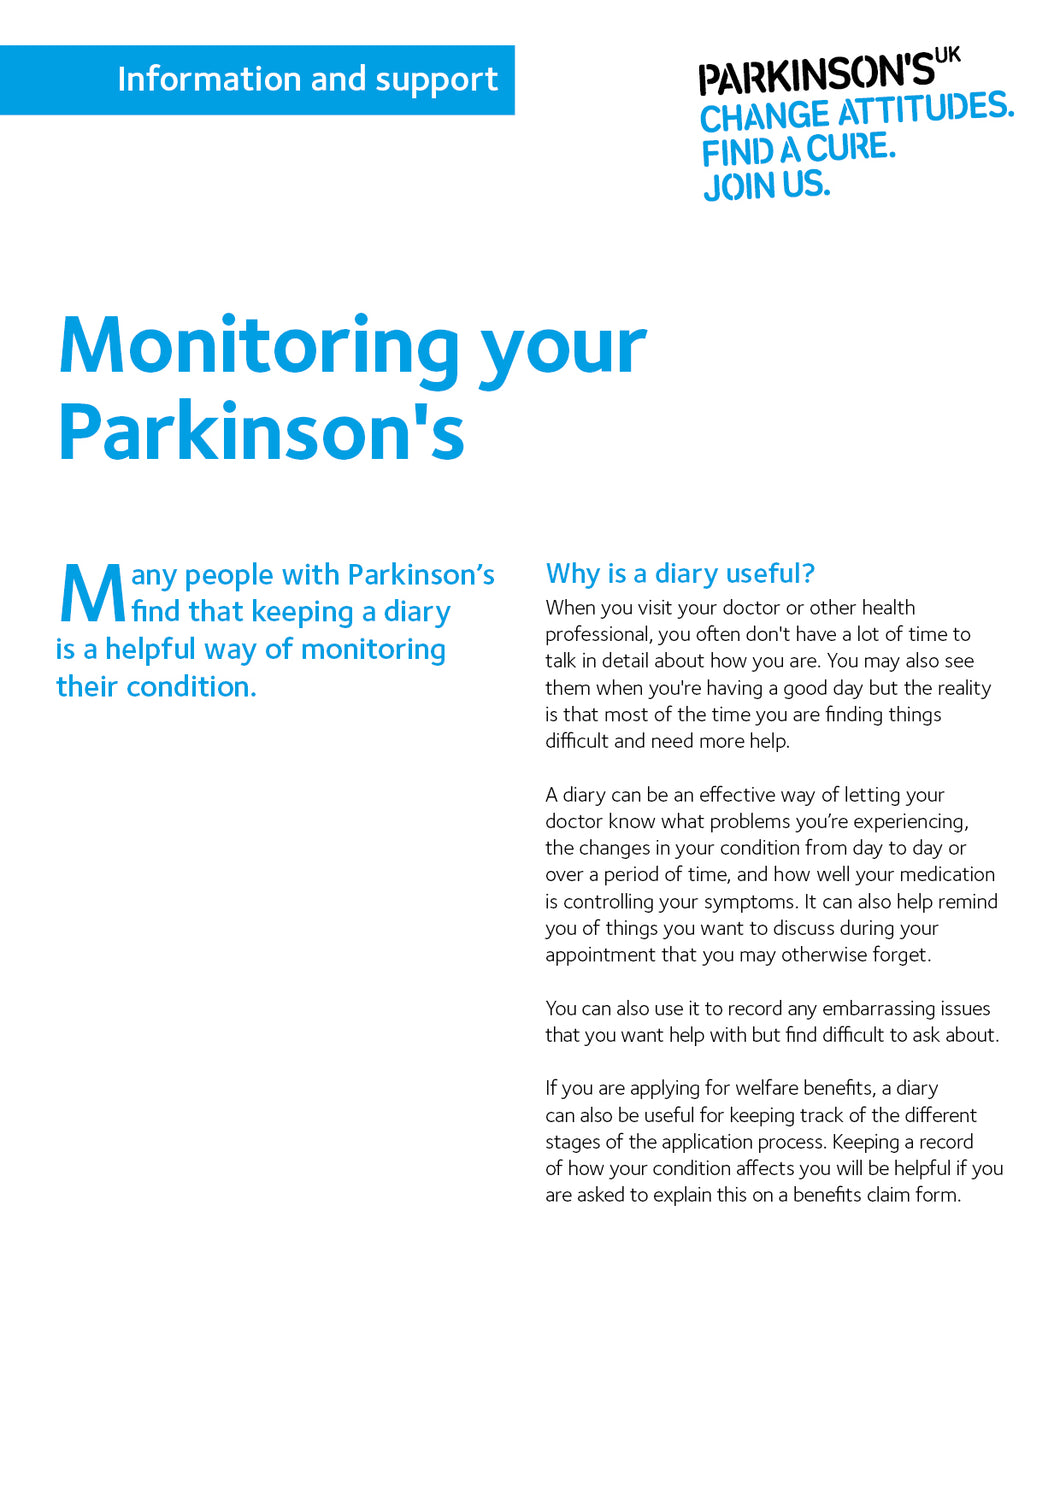 Monitoring your Parkinson's - Parkinson's shop